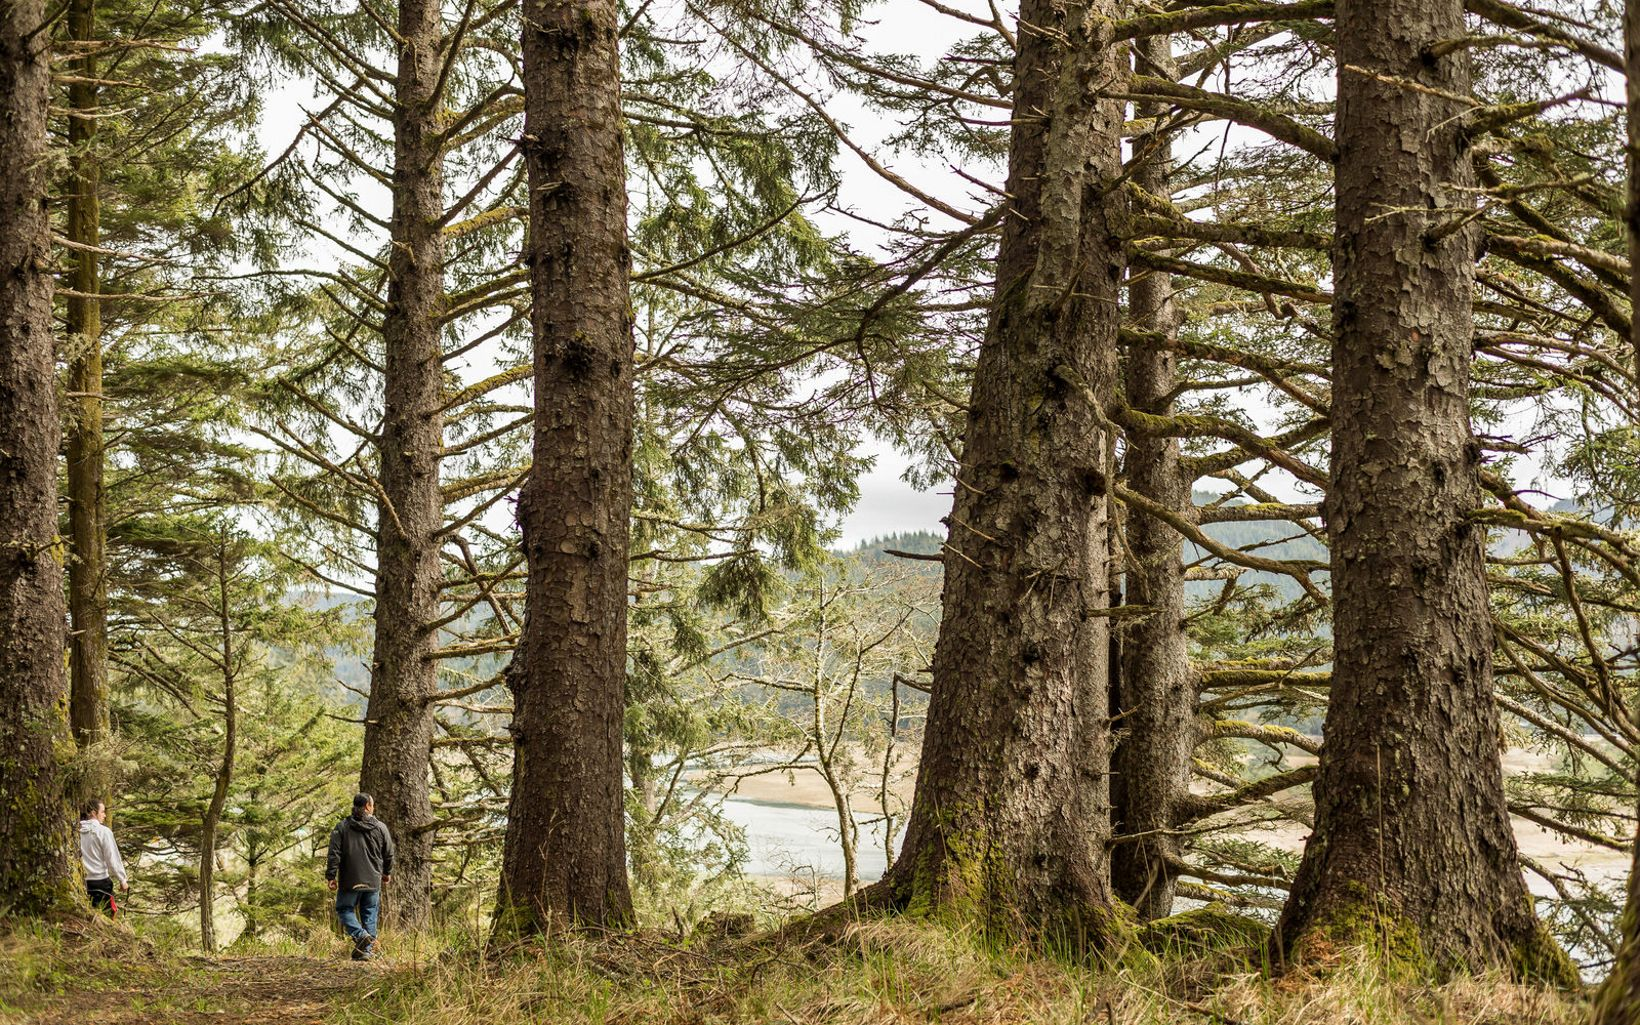 spend a morning in the old-growth Sitka spruce forests and rocky beaches within the Makah reservation in Neah Bay.